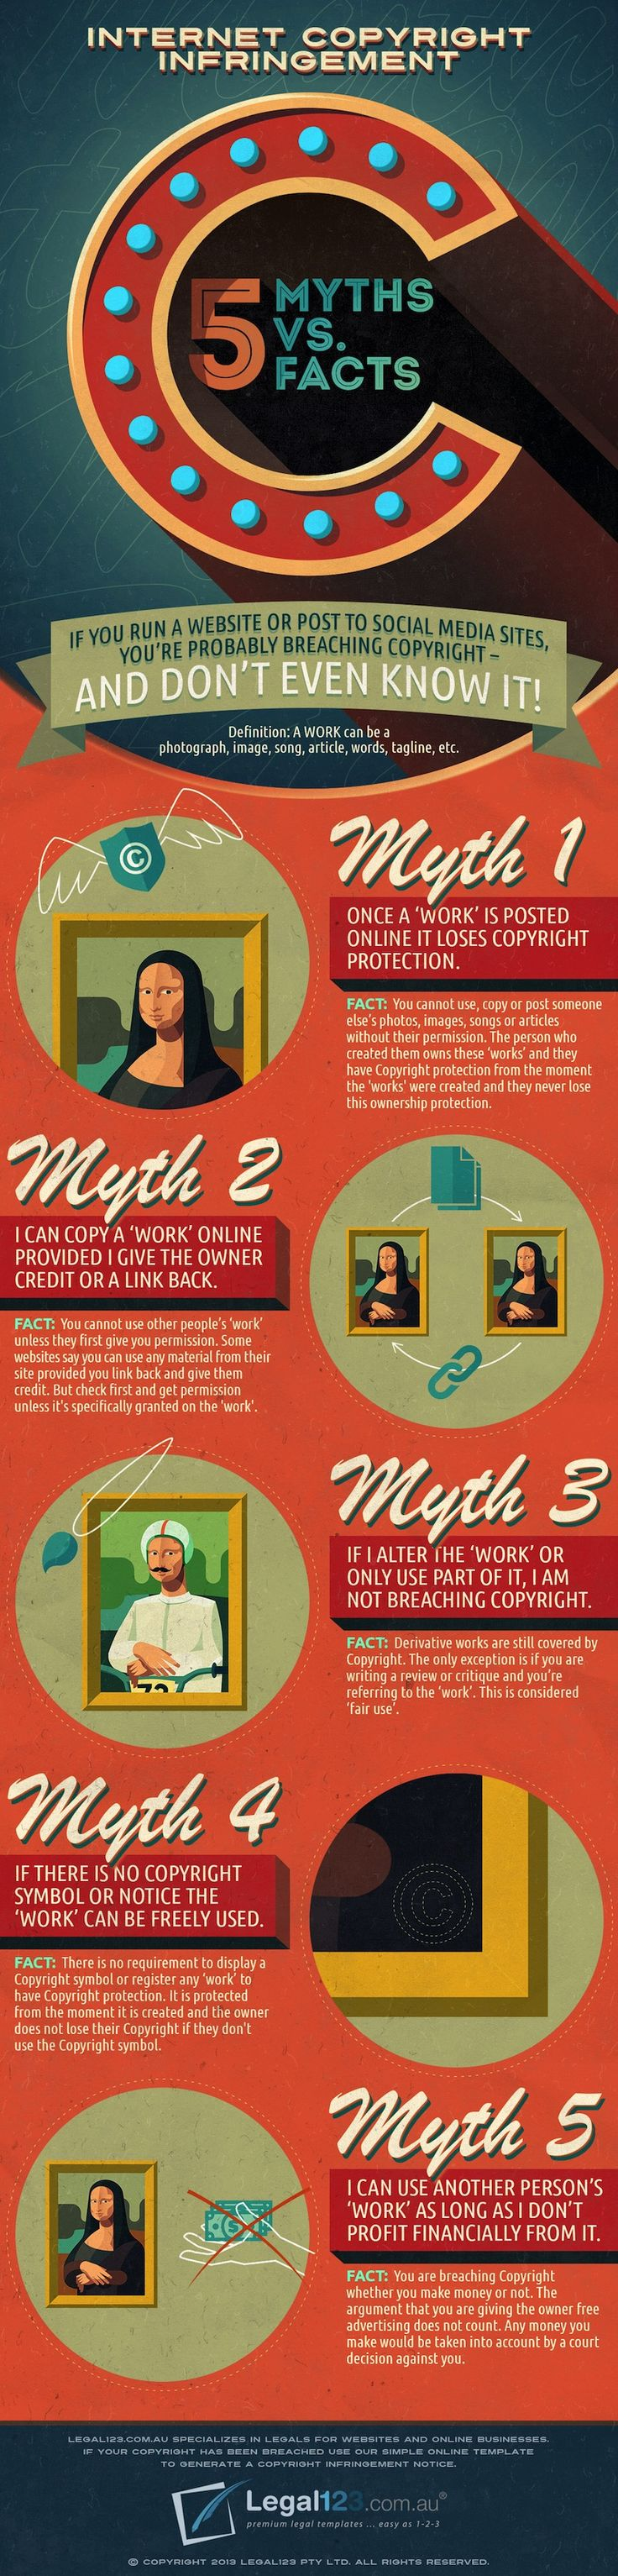 5 mythes over copyright op afbeeldingen ontkrachtCopyright Law, Food For Thought, Image Online, Copyright Infringement, Social Media, Internet Copyright, Facts Infographic, Blog Copyright, Breach Internet